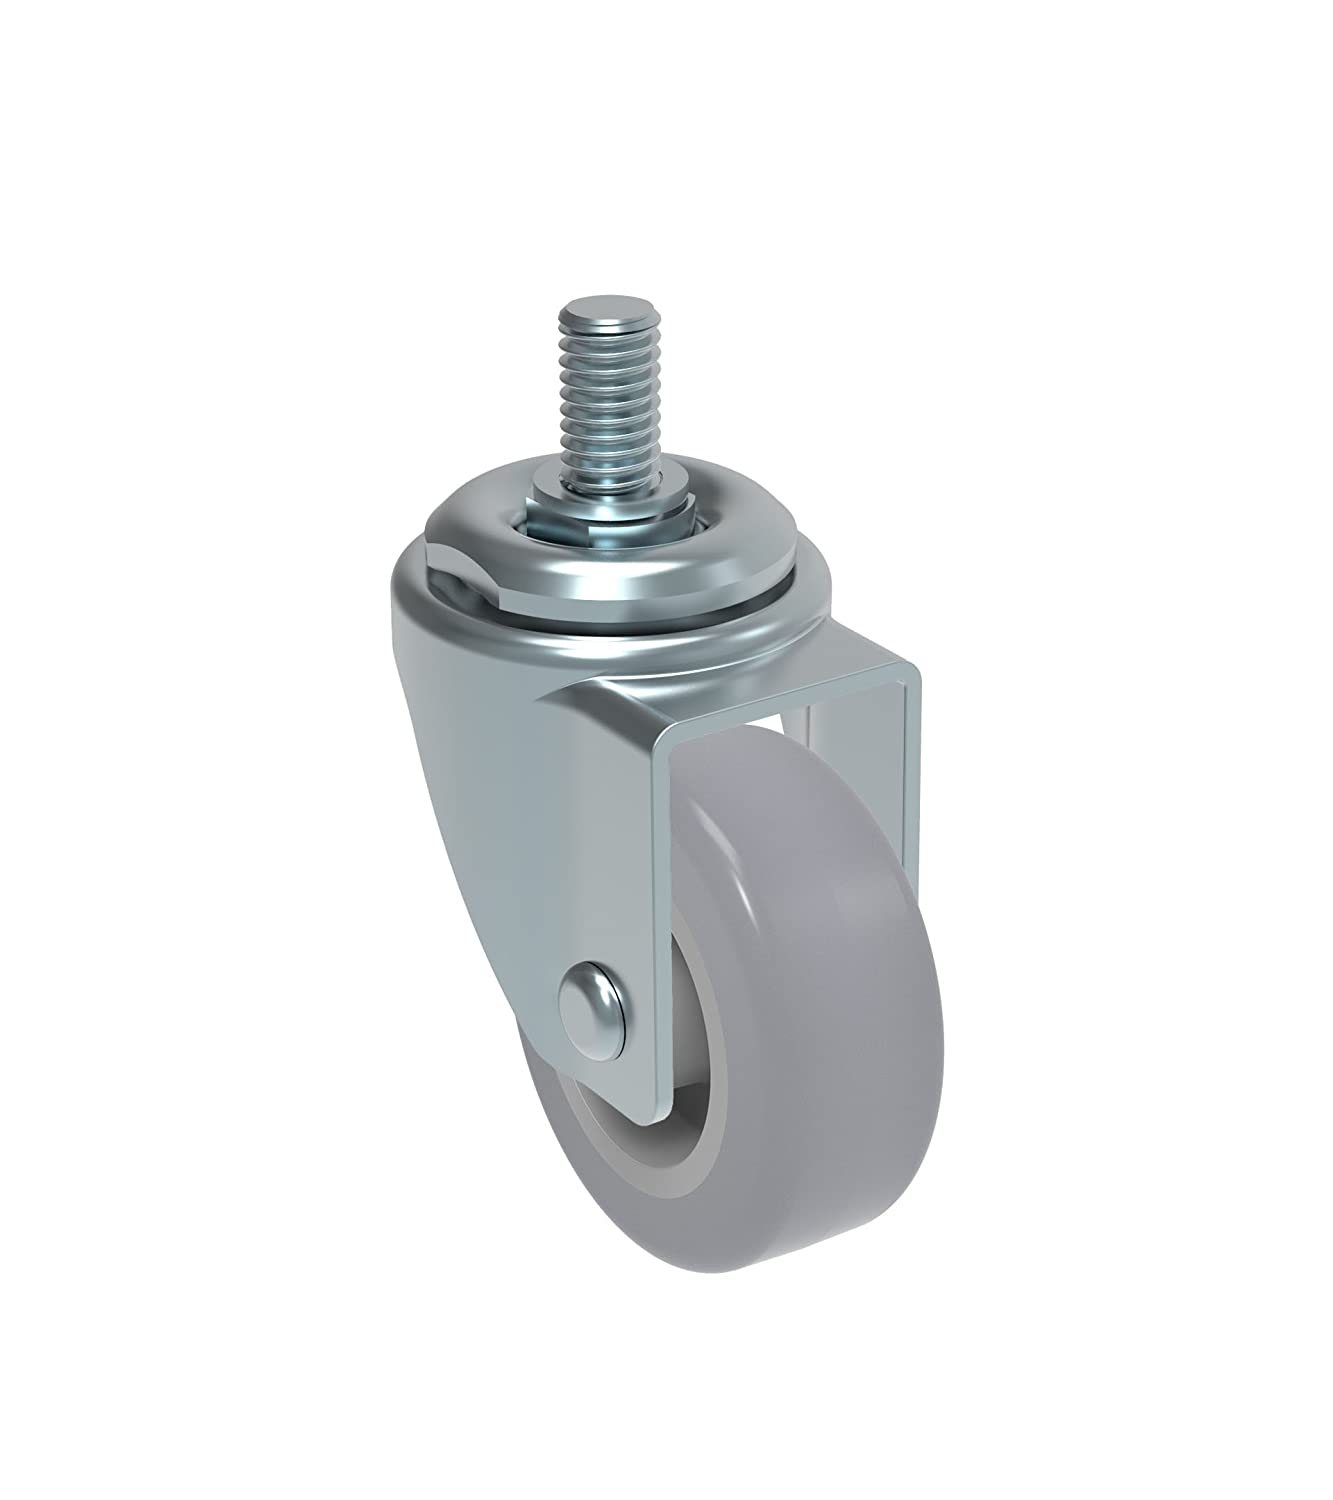 Schioppa L10 Series, GLEED 210 SP, Swivel Caster, 2